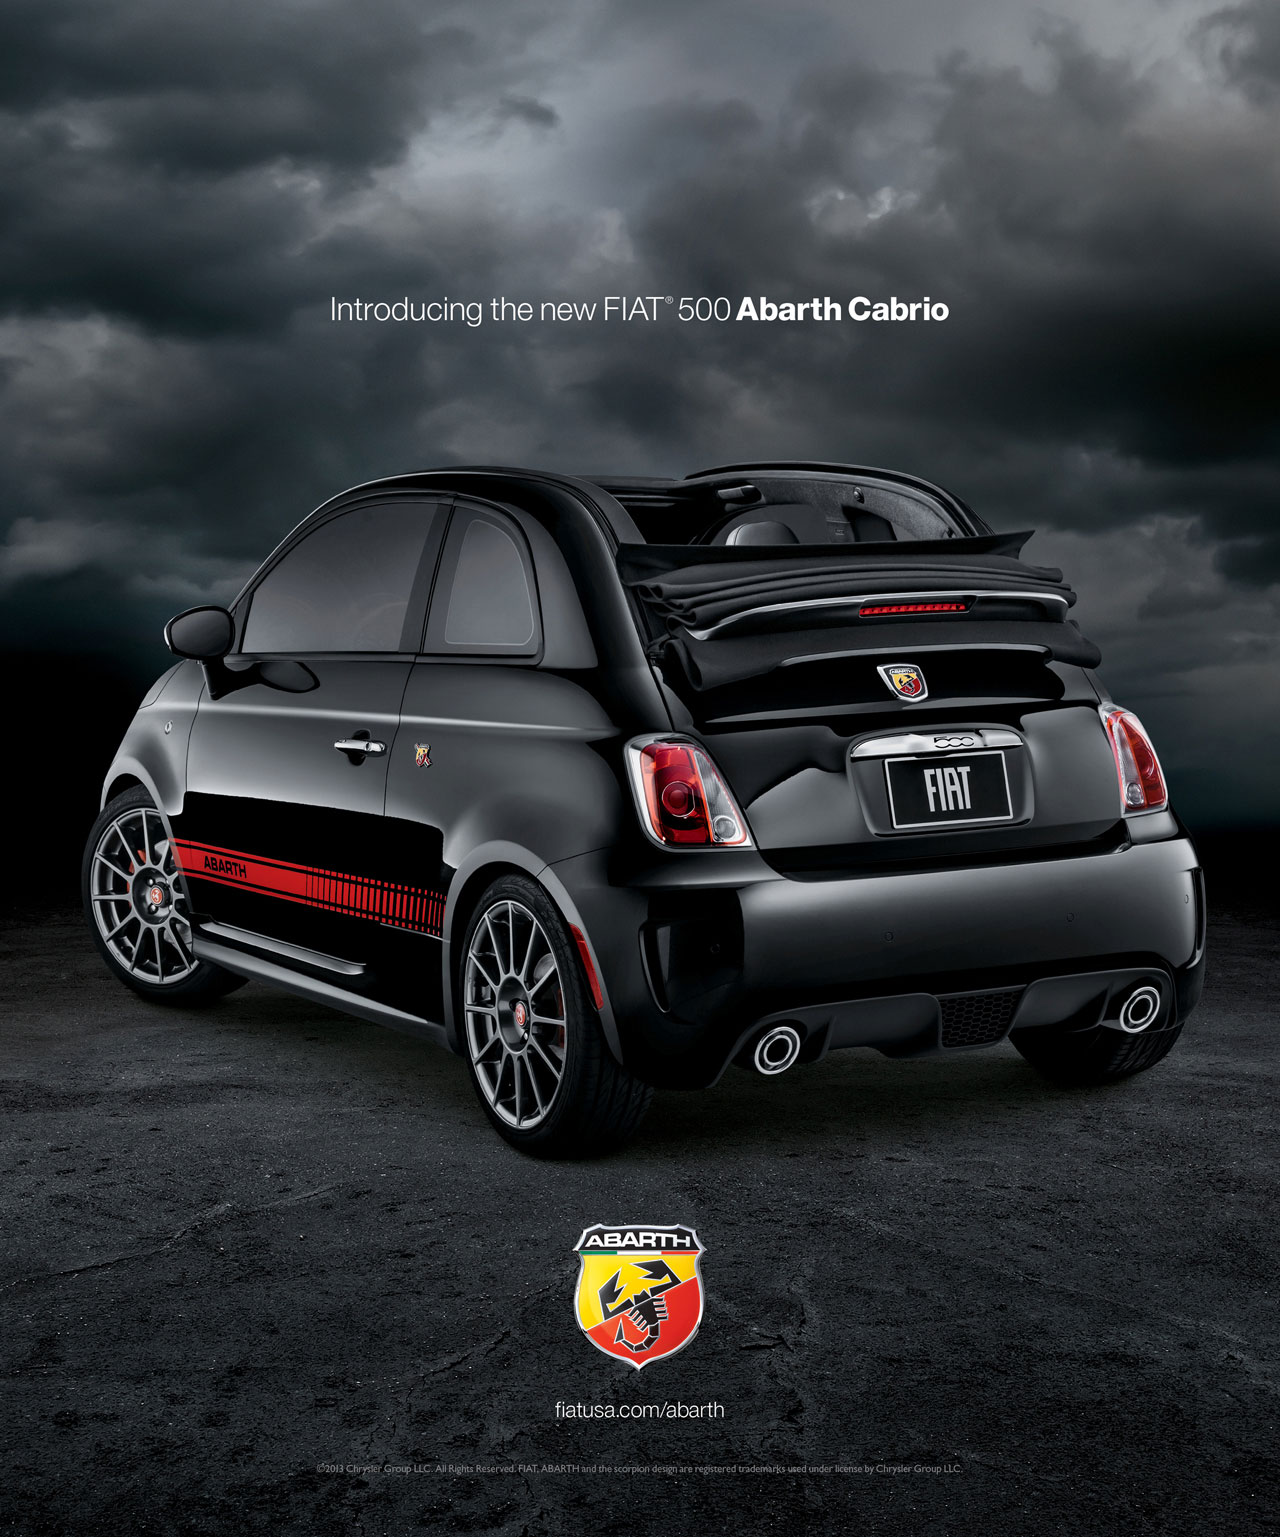 fiat 500 abarth made from models in body paint w video autoblog. Black Bedroom Furniture Sets. Home Design Ideas